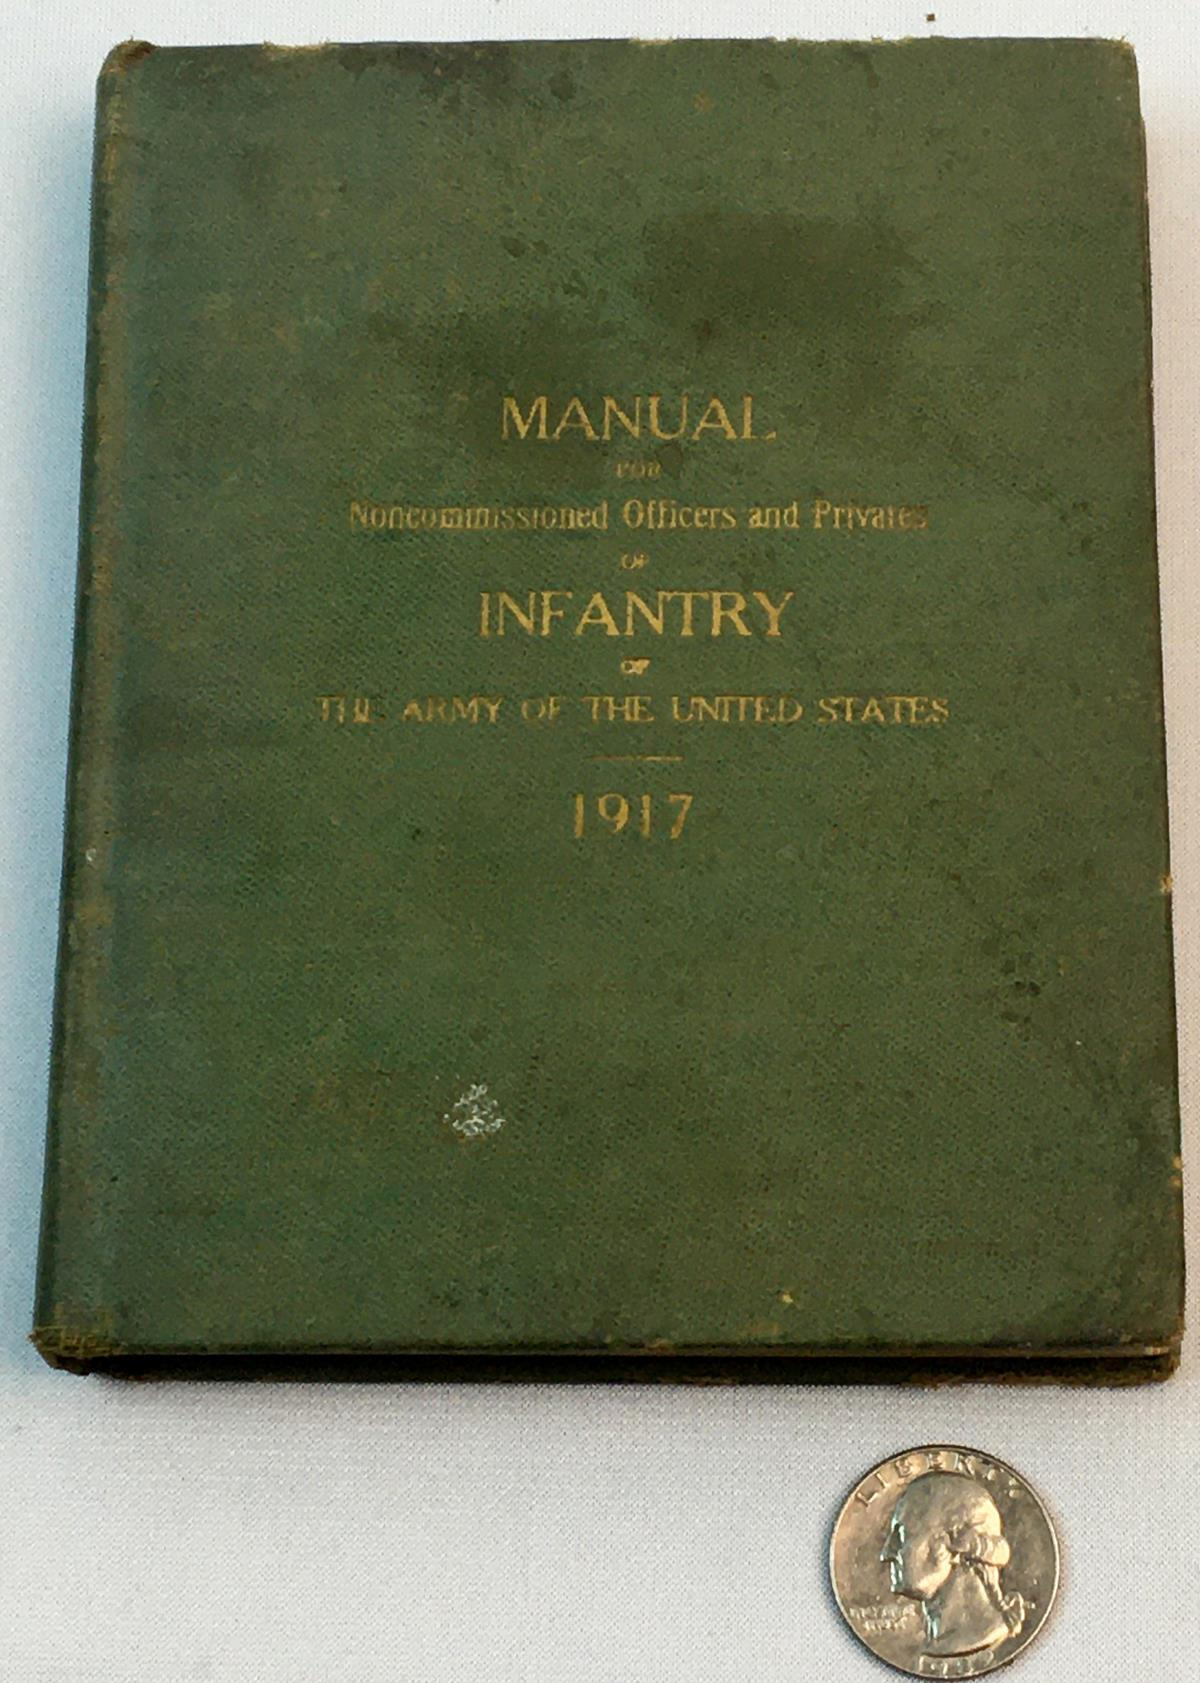 1917 Manual For Noncommissioned Officers & Privates Infantry of The Army of The United States